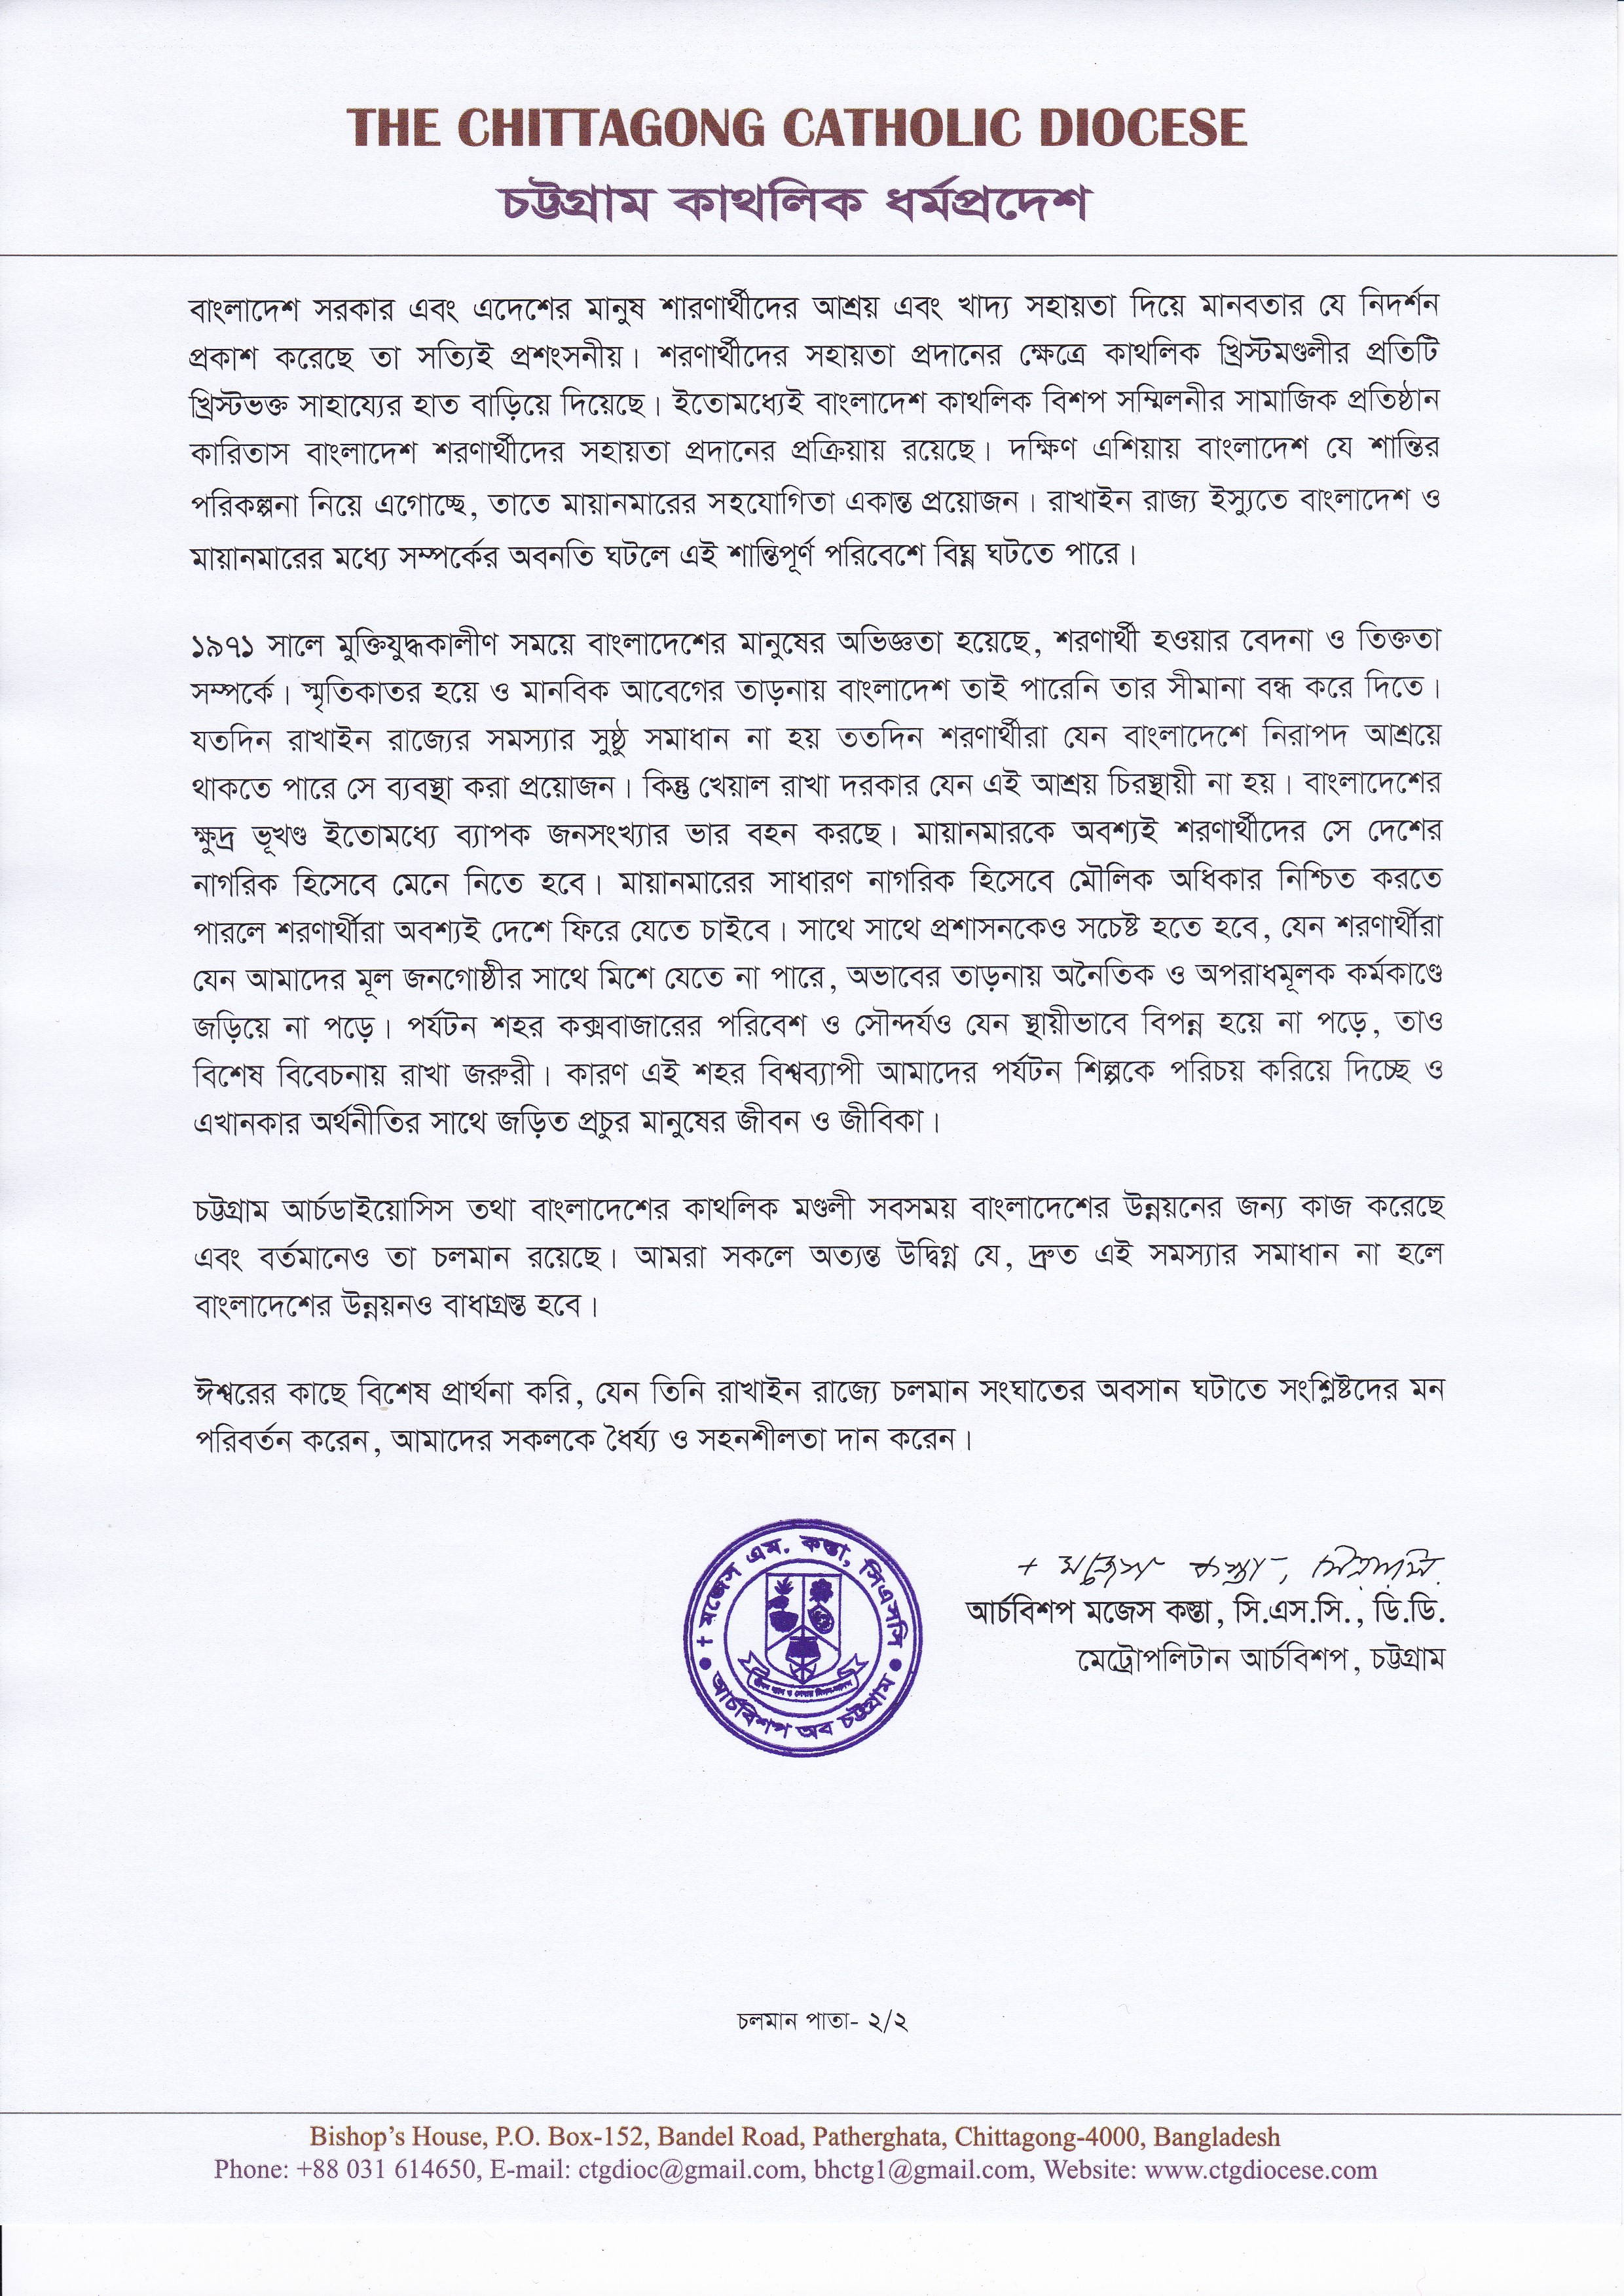 Statement of Archbishop Moses Costa, CSC regarding refugees from Rakhaine State of Myanmar-2